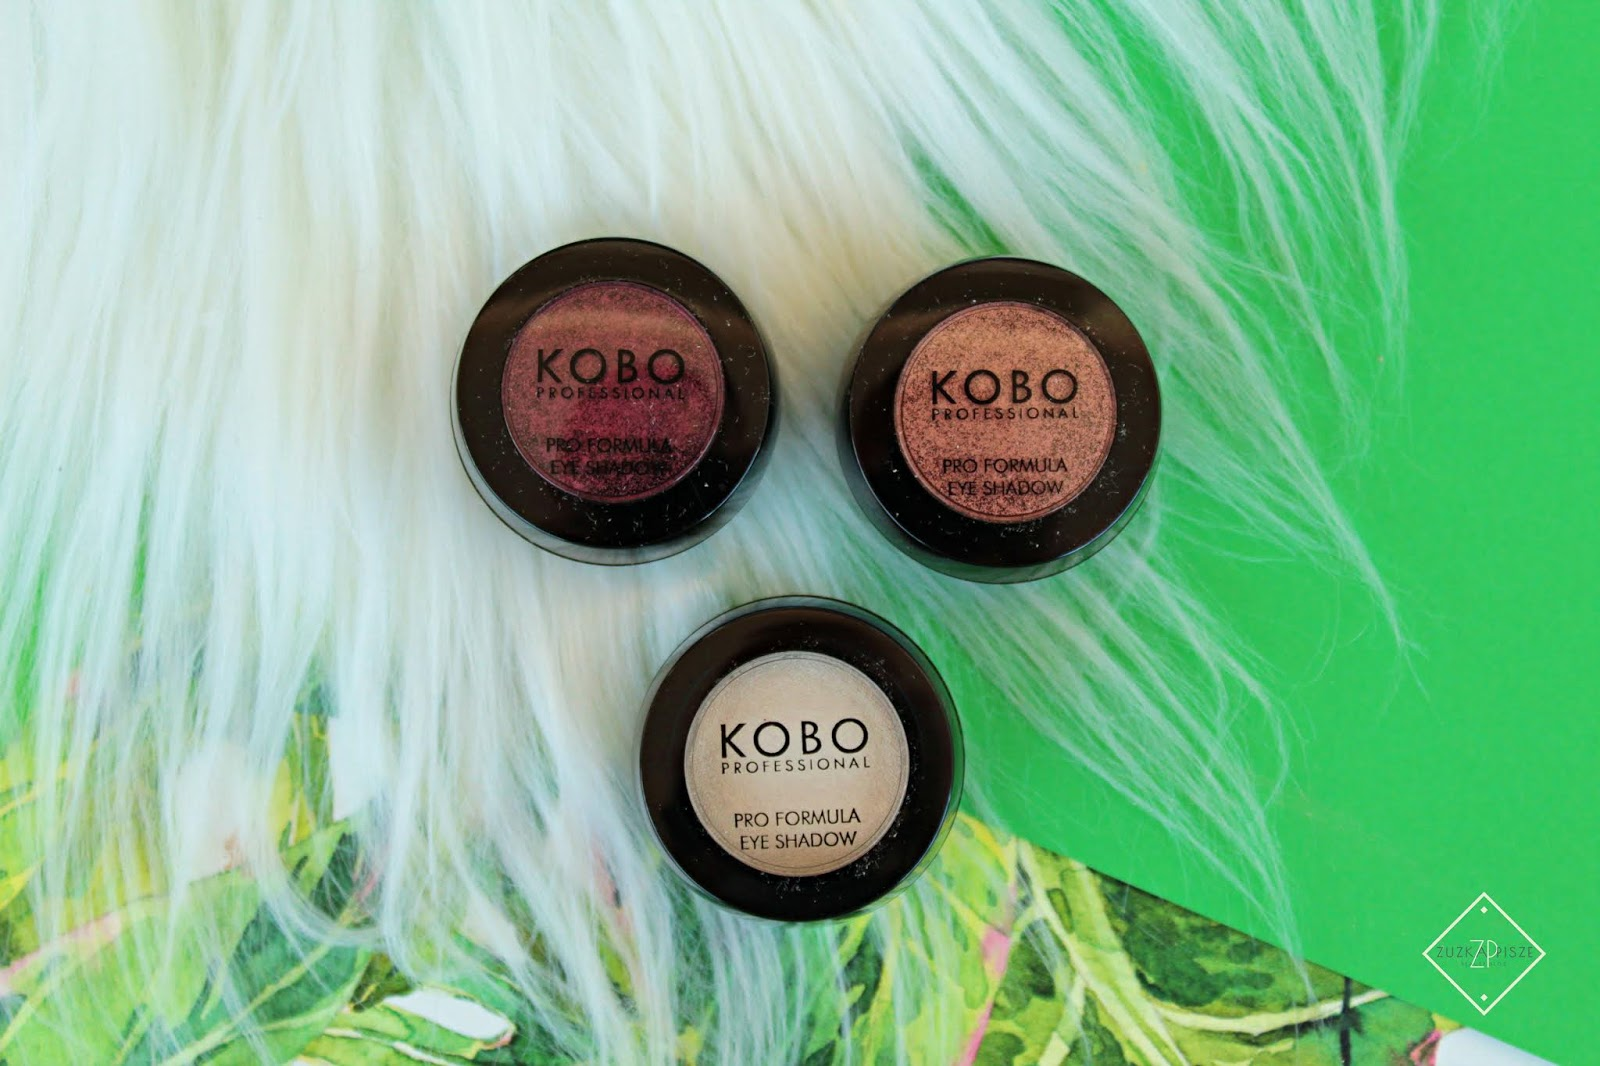 Kobo Professional Pro Formula Eye Shadow